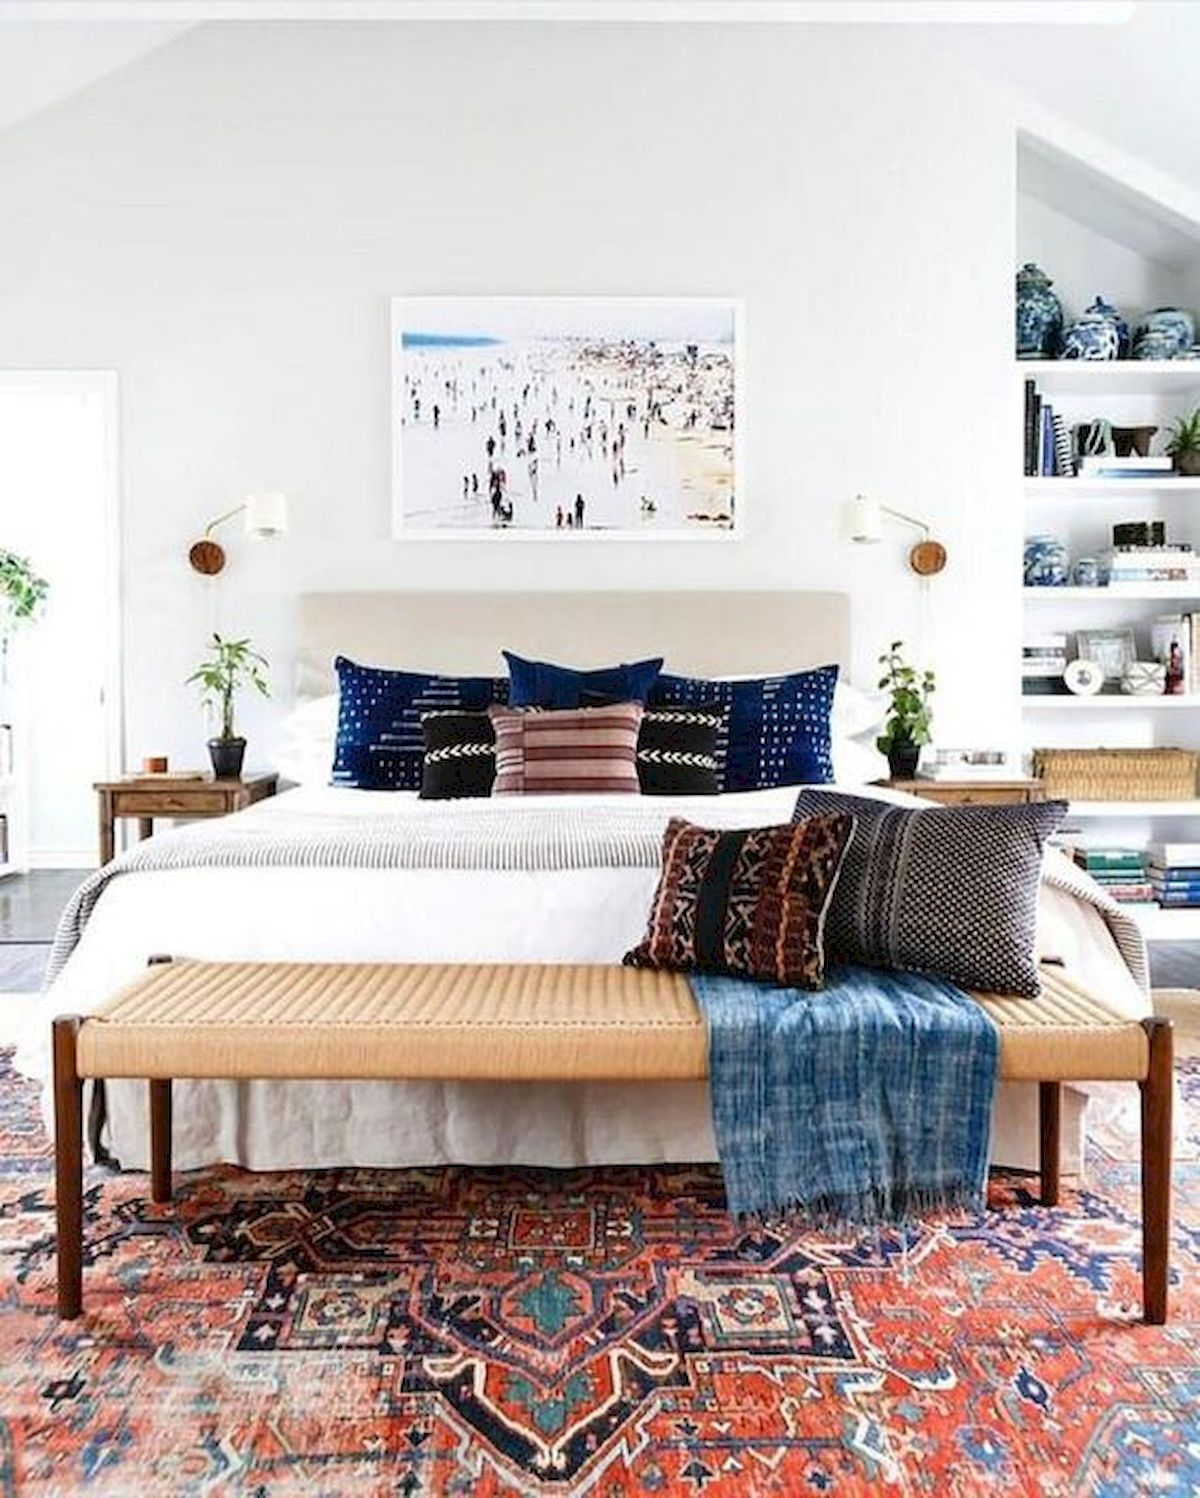 30 Cozy Fall Decoration Ideas For Your Bedroom (3)